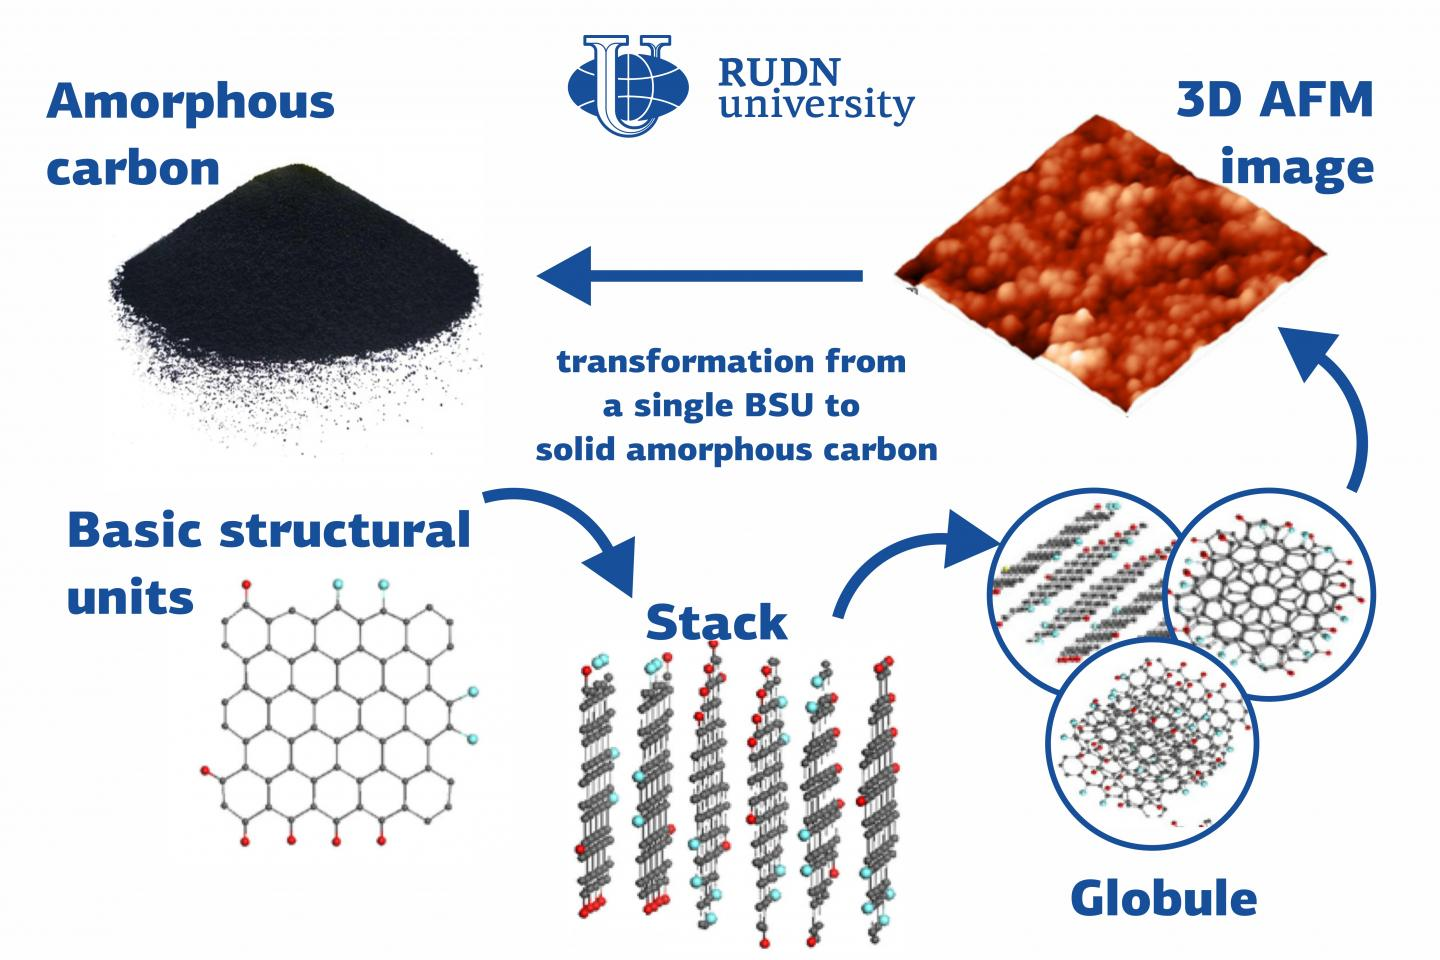 Many substances with different chemical and physical properties, from diamonds to graphite, are made up of carbon atom